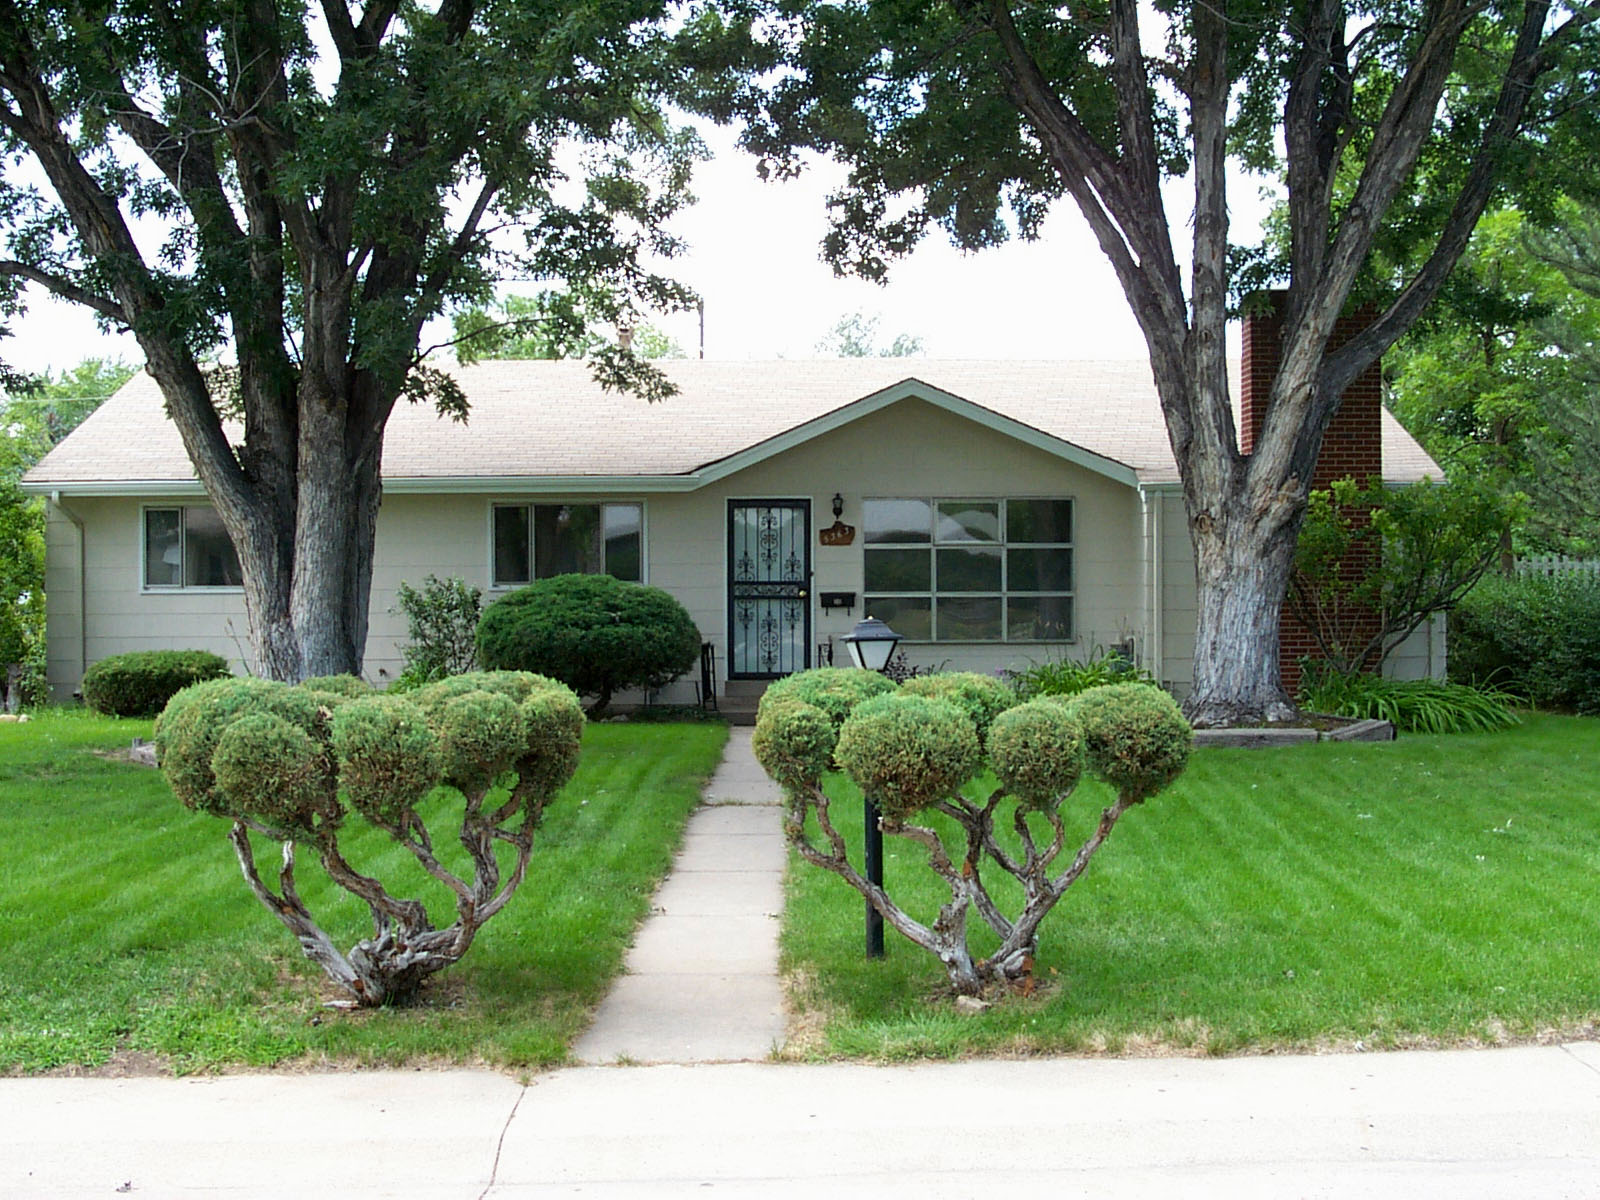 There is plenty of mortage money available for homes like this one in Littleton, Colorado. But, qualifing is more strict.